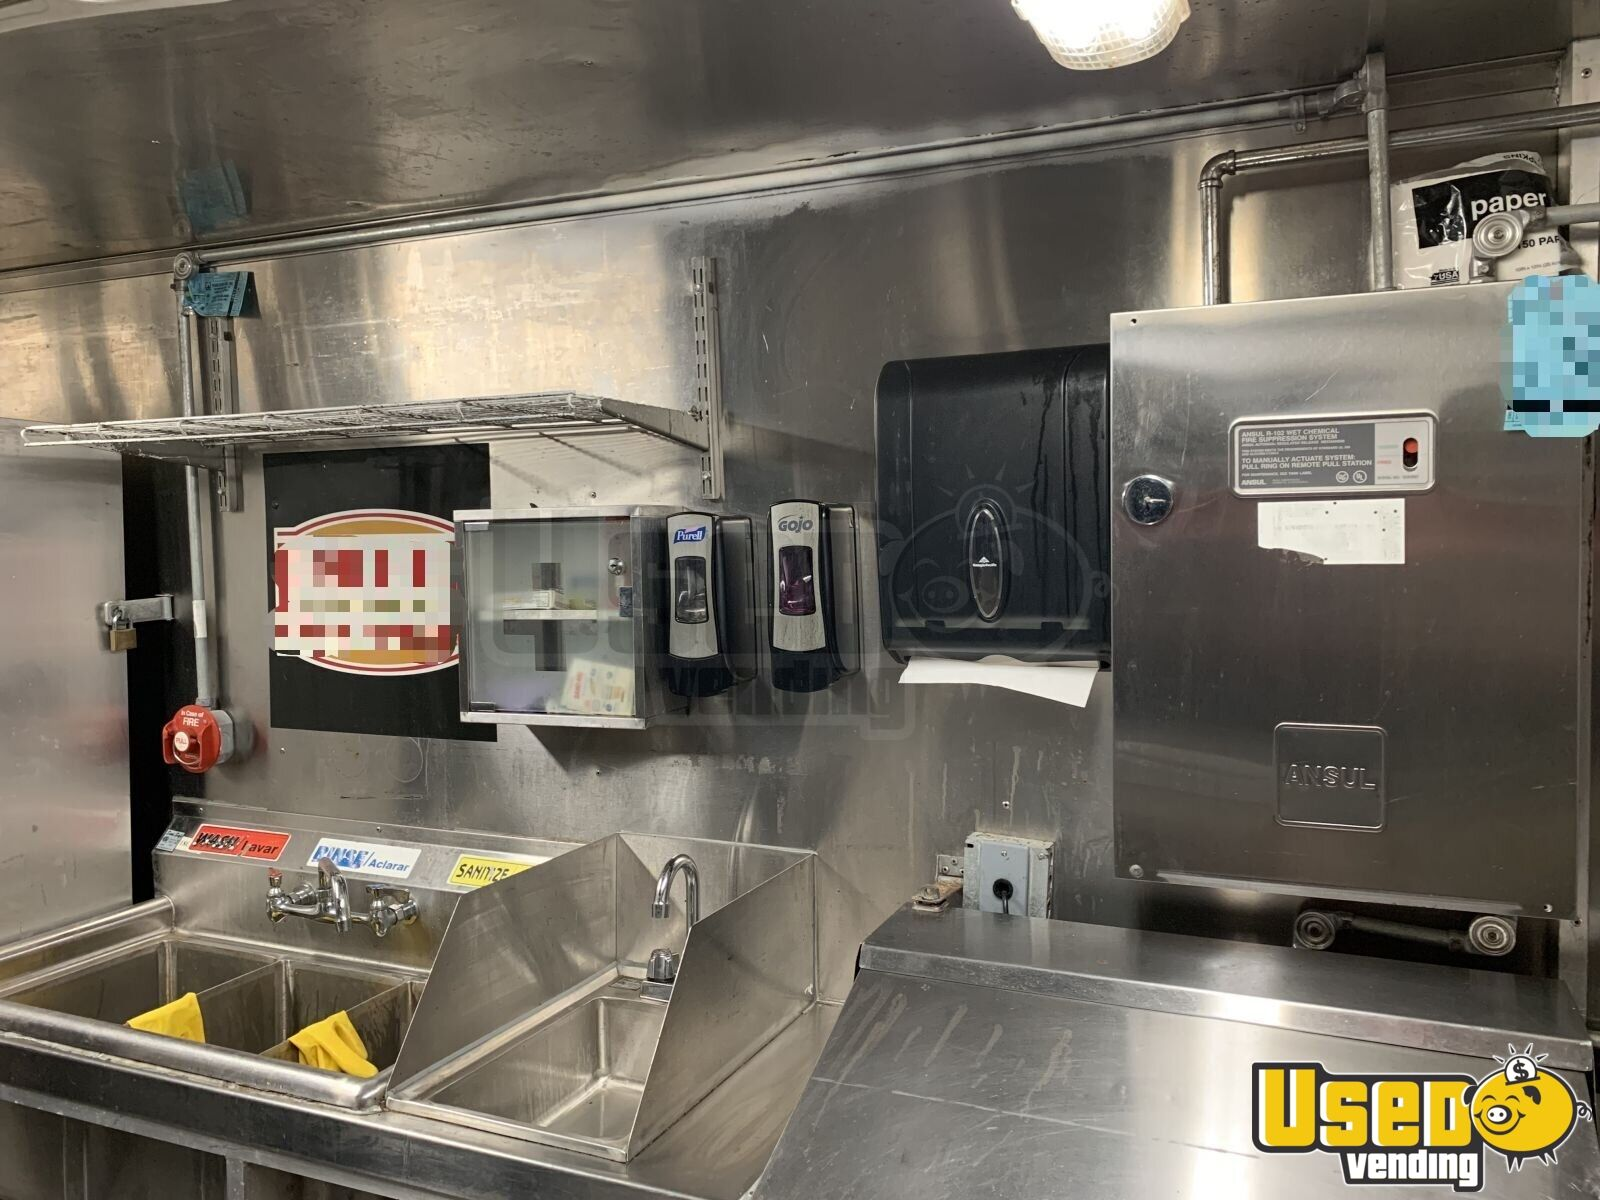 2006 Freightliner Mt45 Food Truck Stainless Steel Wall Covers Florida Diesel Engine for Sale - 5